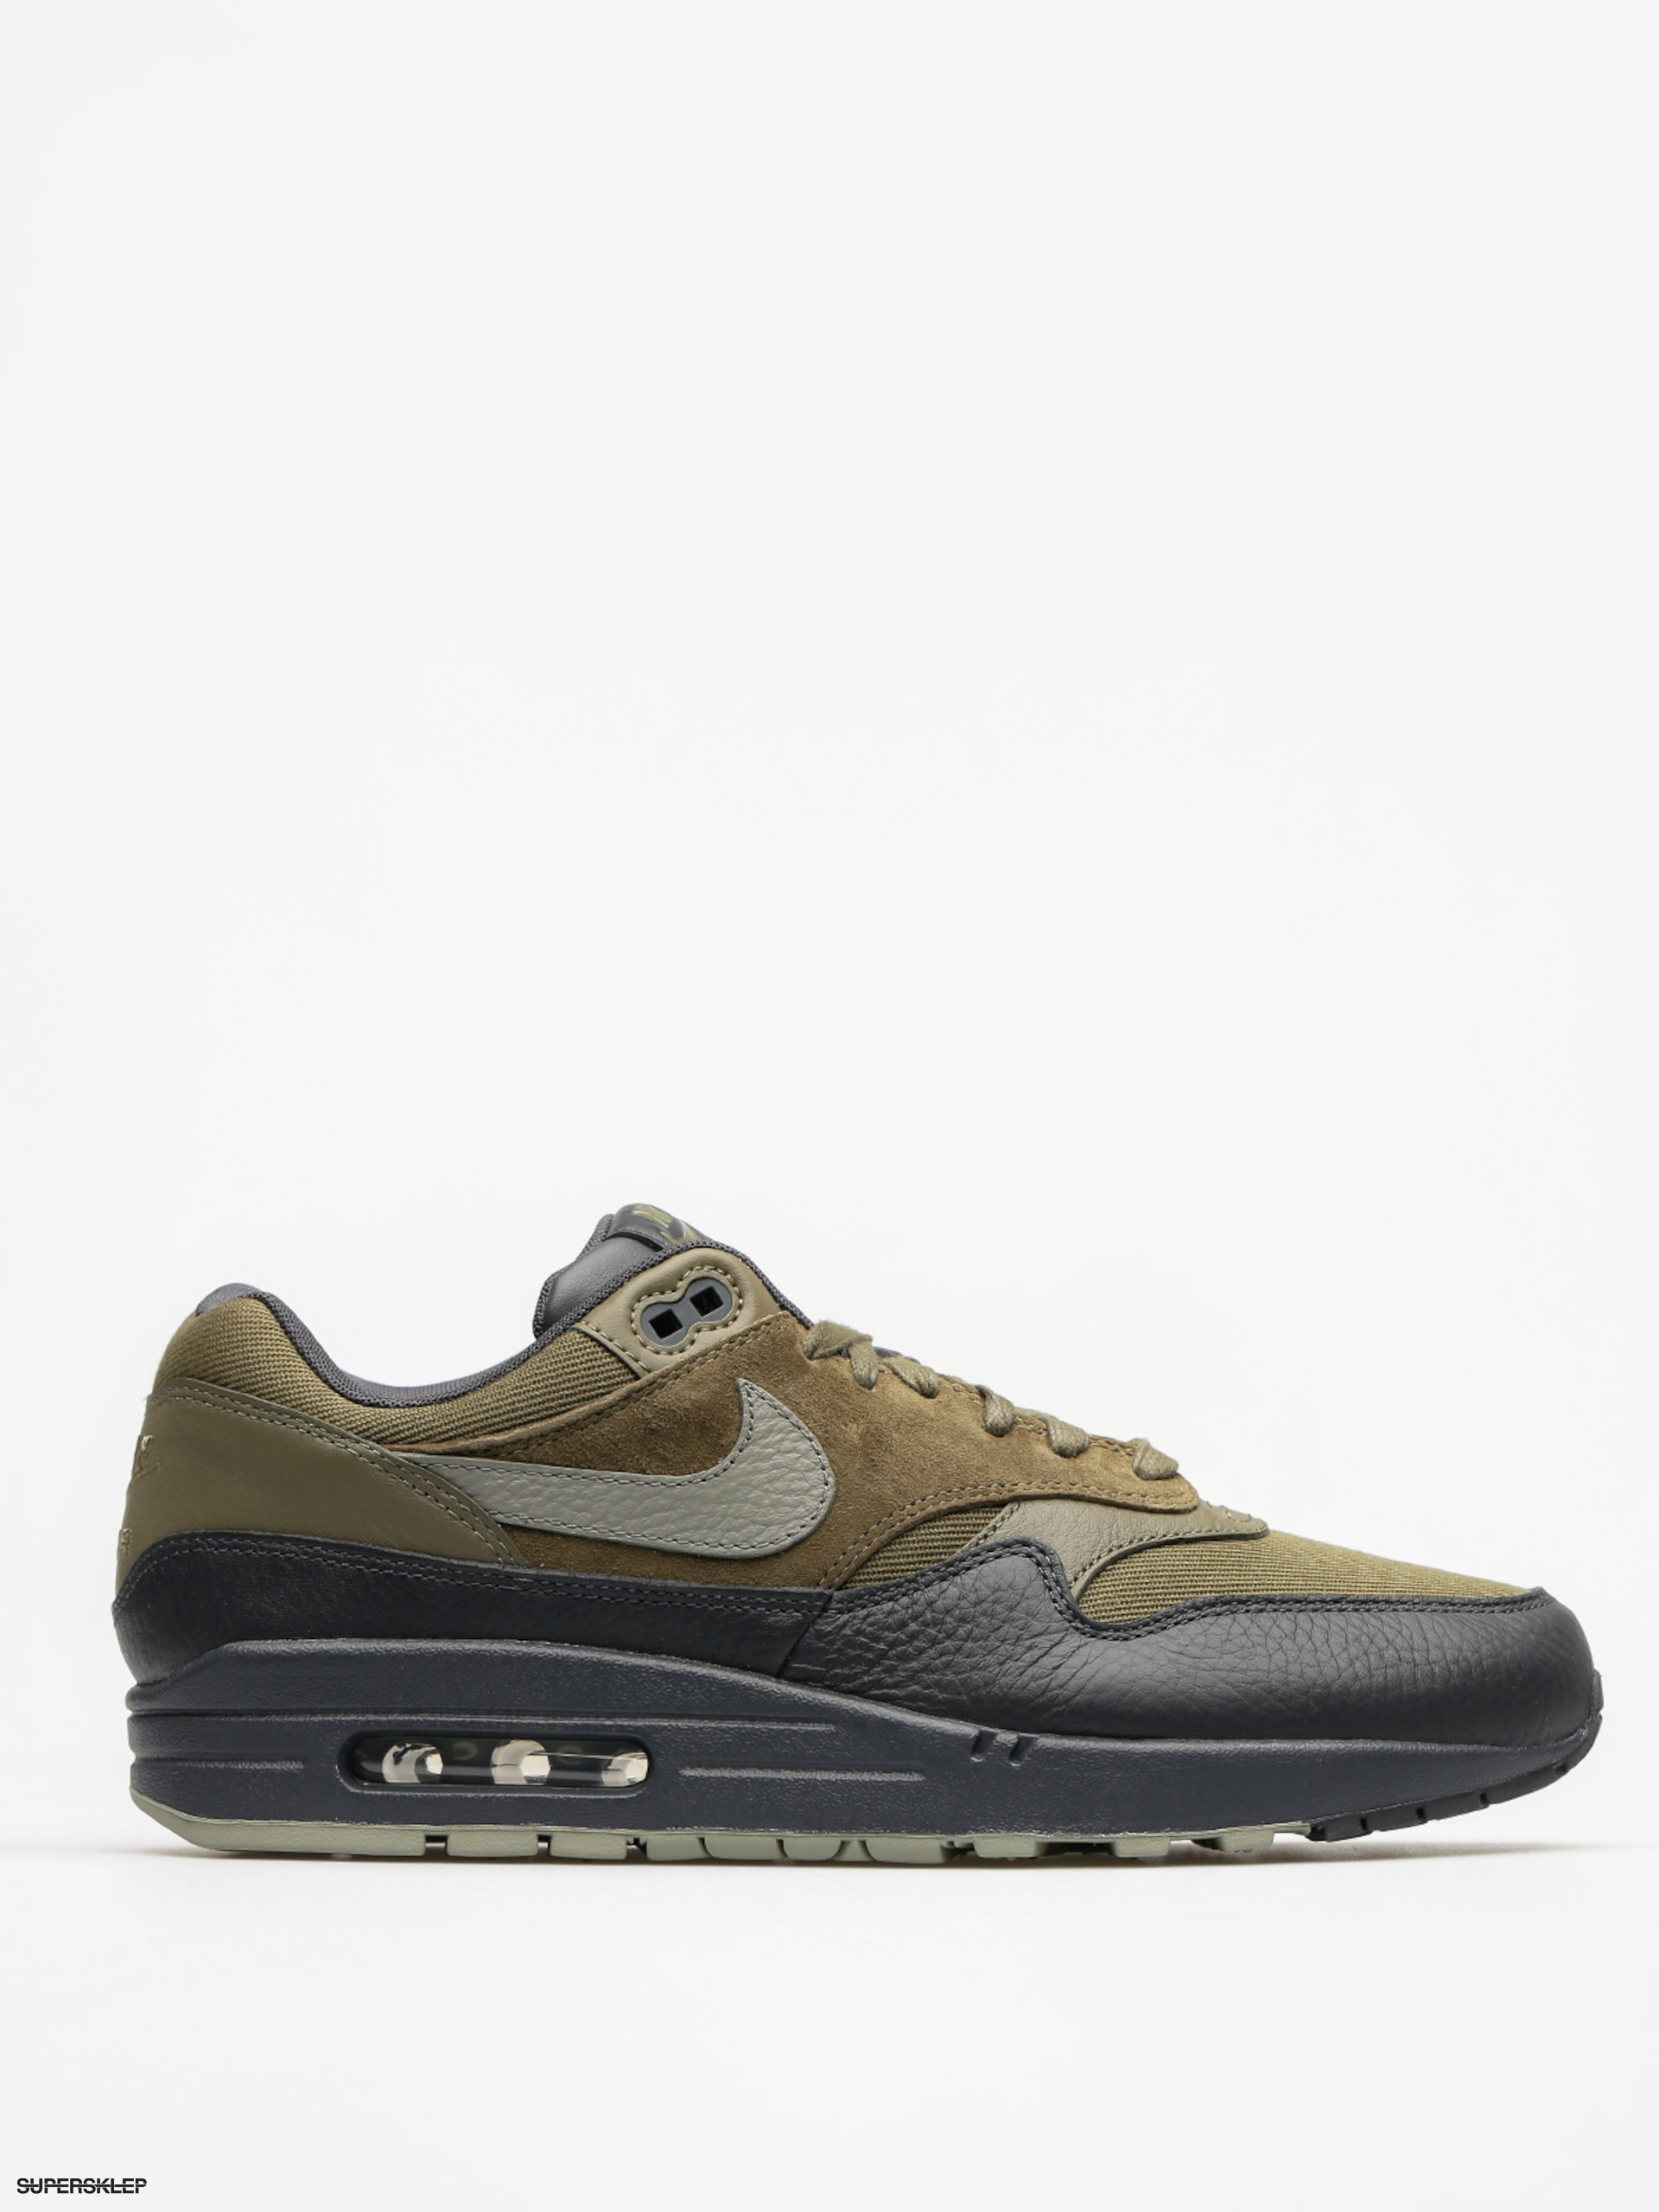 Boty Nike Air Max 1 (Premium medium olive/dark stucco anthracite)